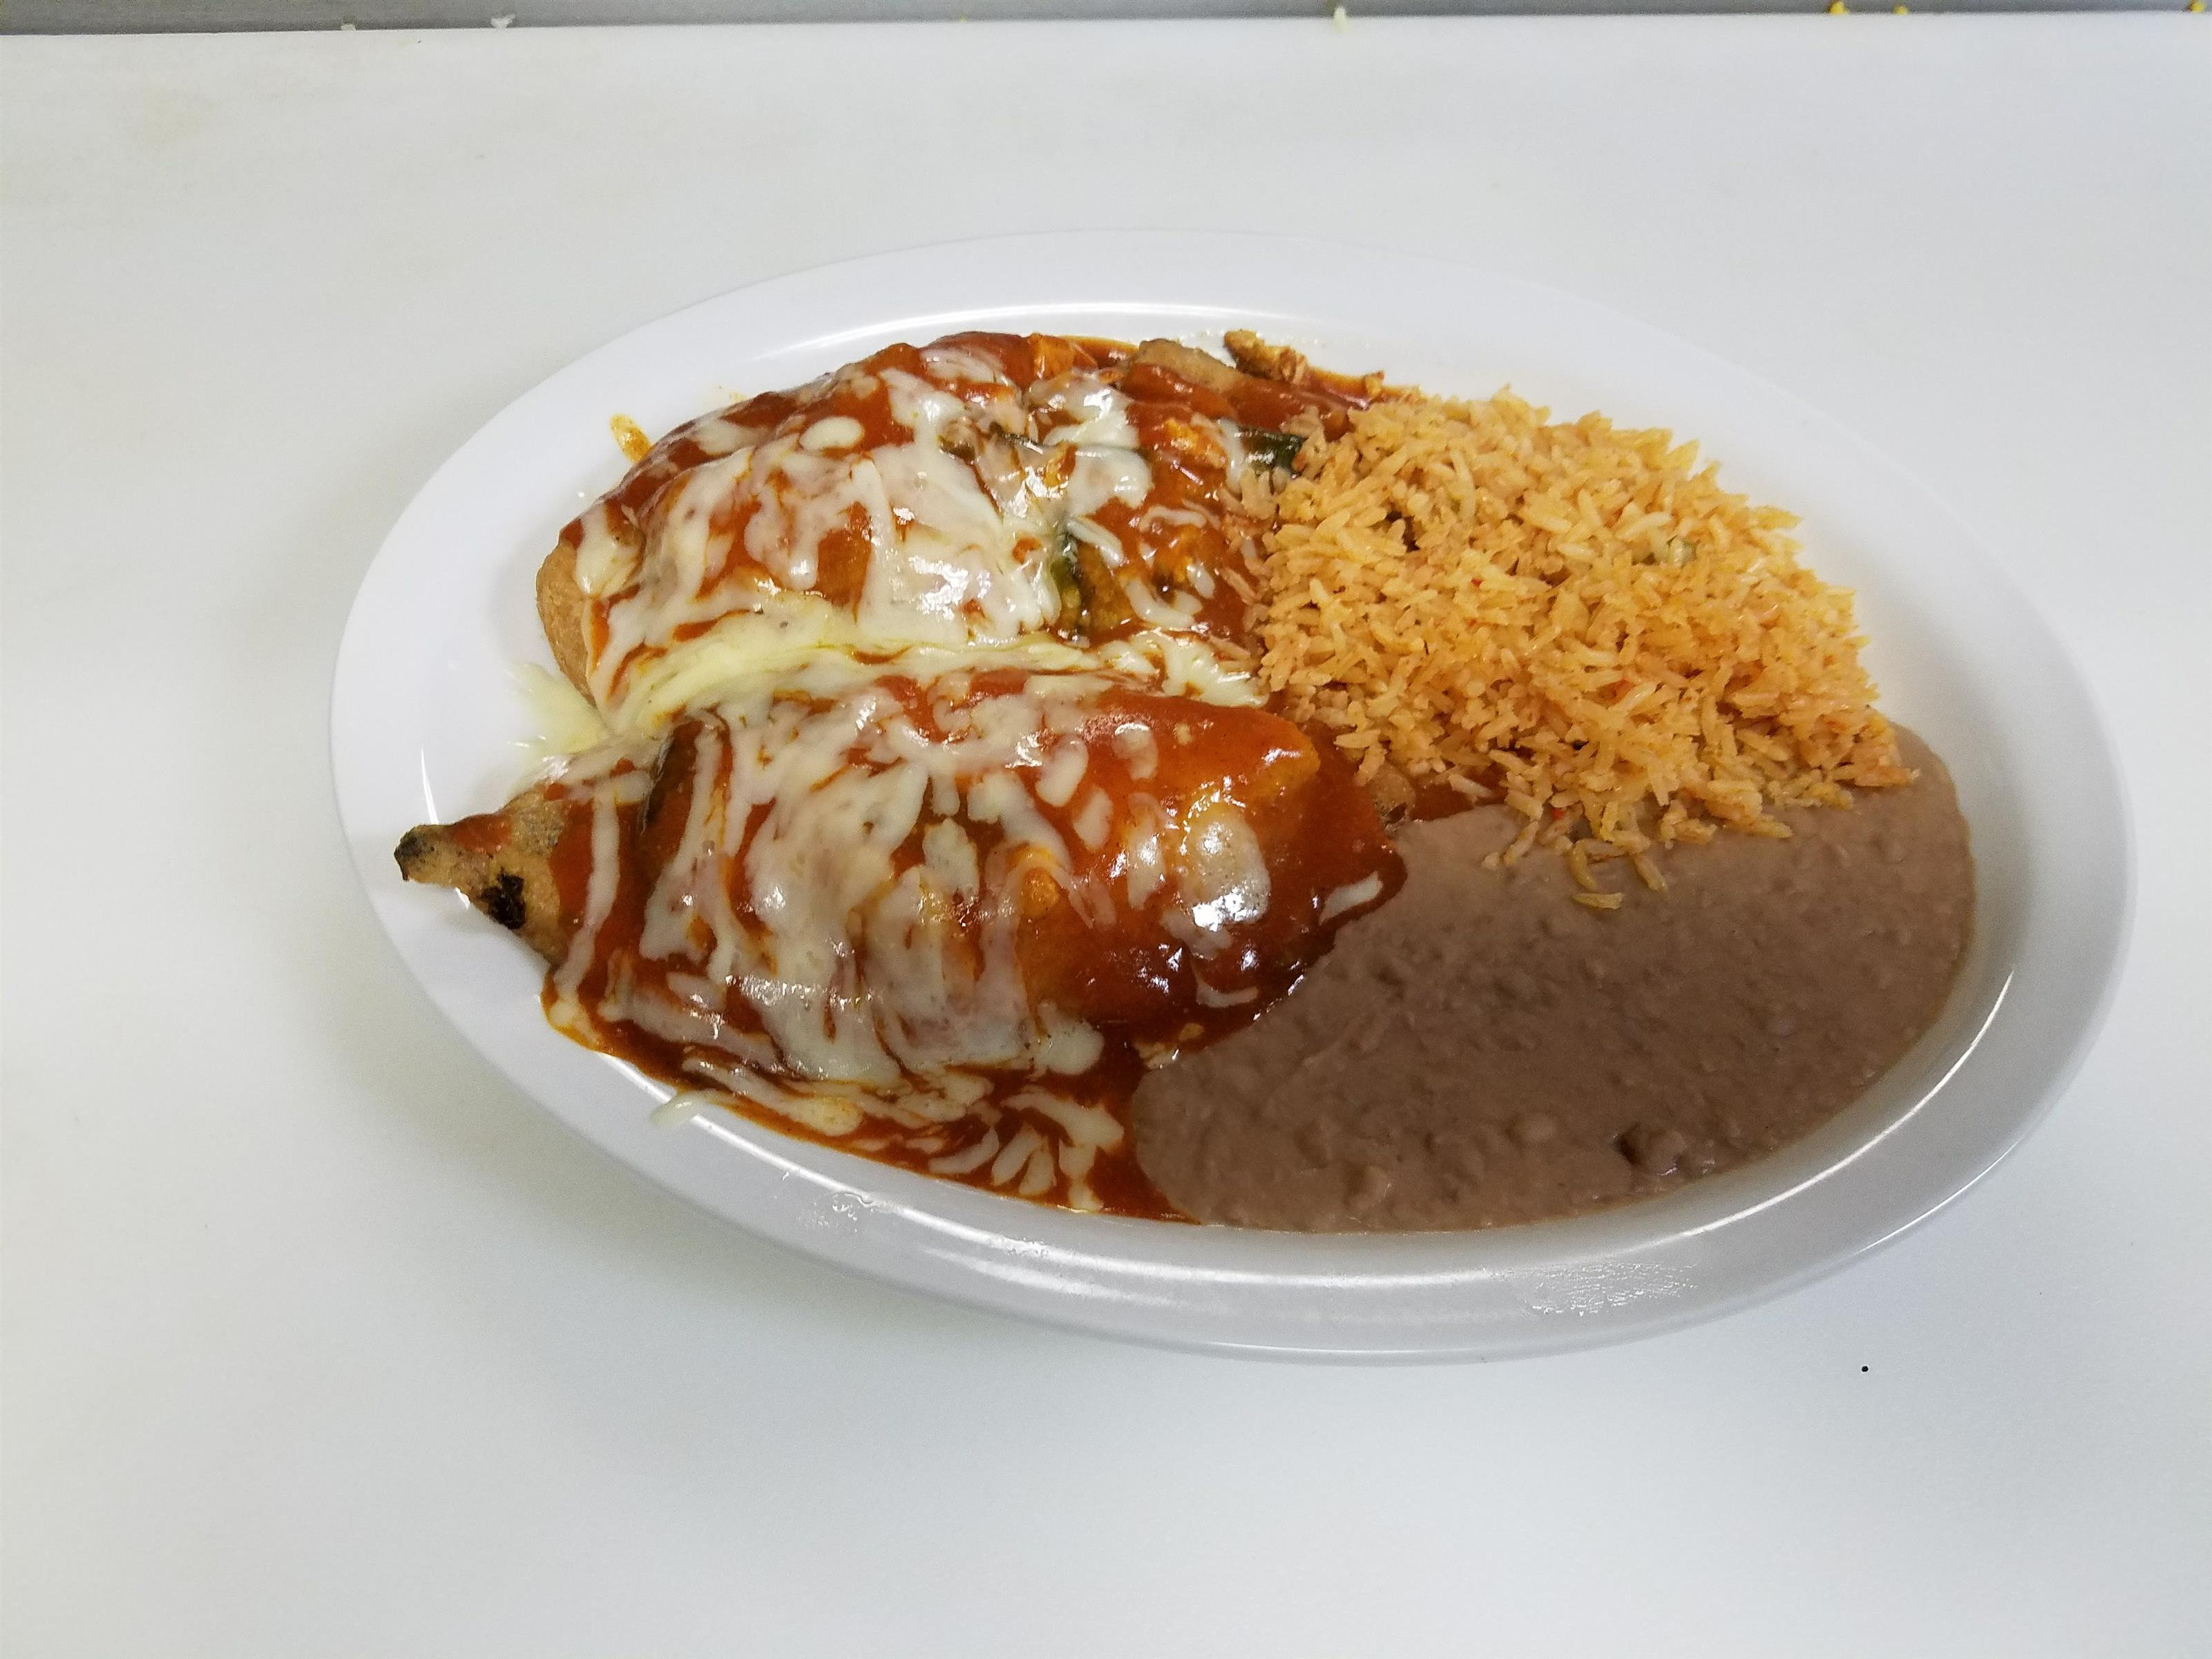 refried beans, rice, and chicken with cheese and sauce on top